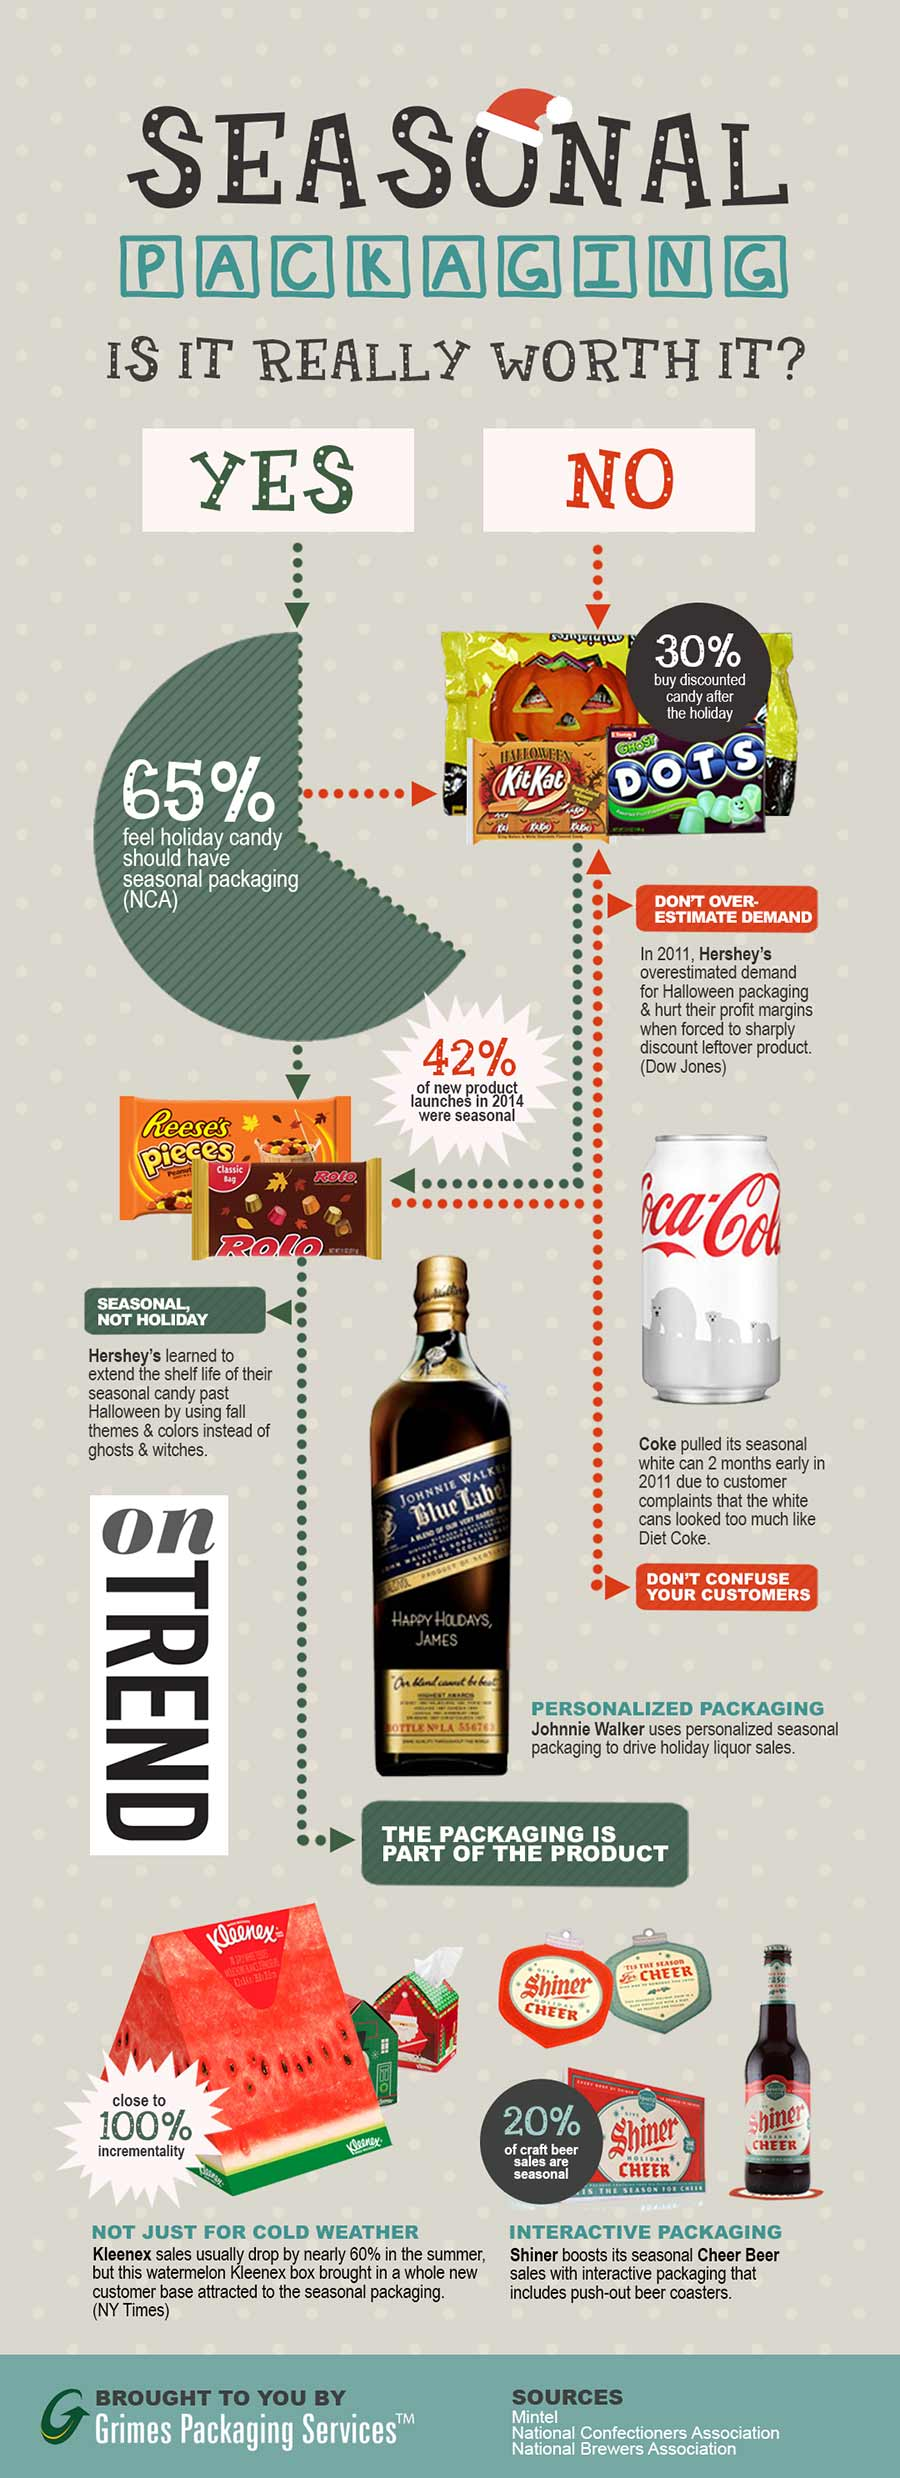 seasonal-packaging-infographic